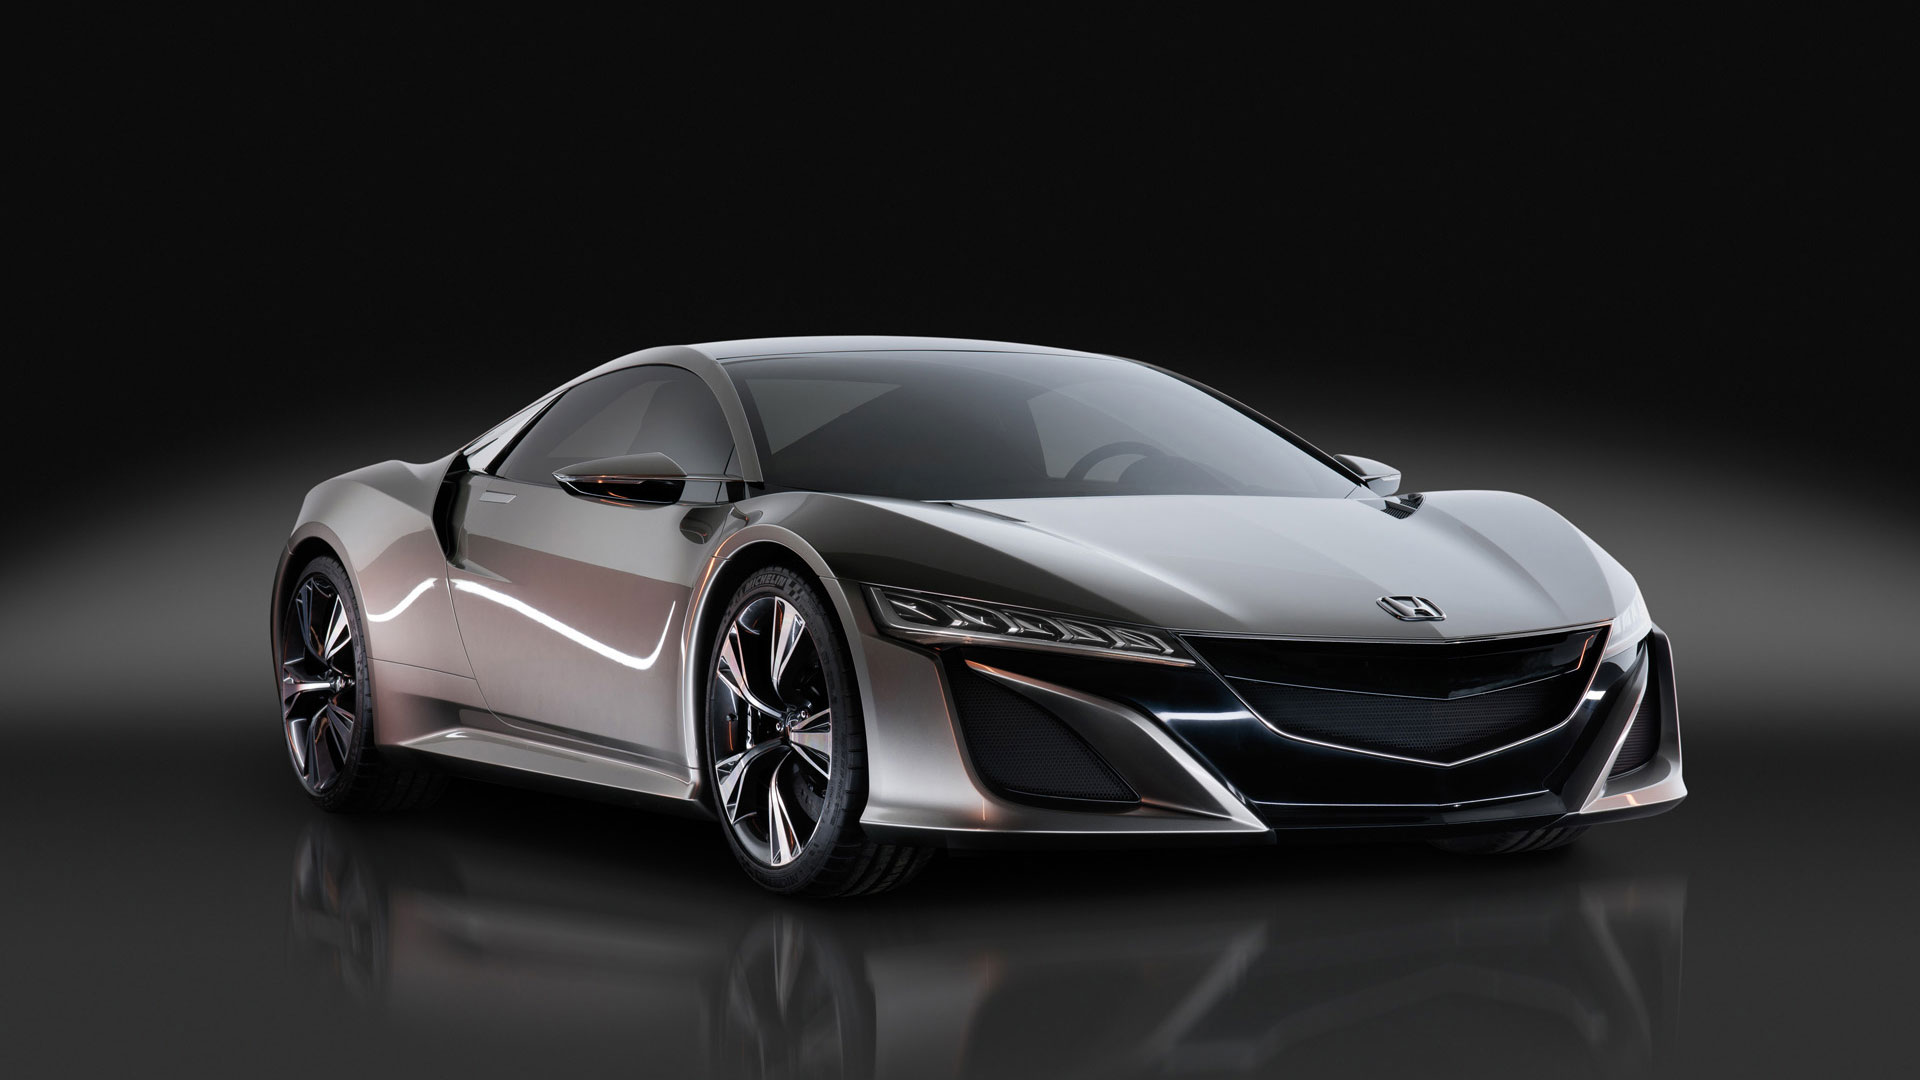 2015-Acura-NSX-Wallpaper-Full-HD